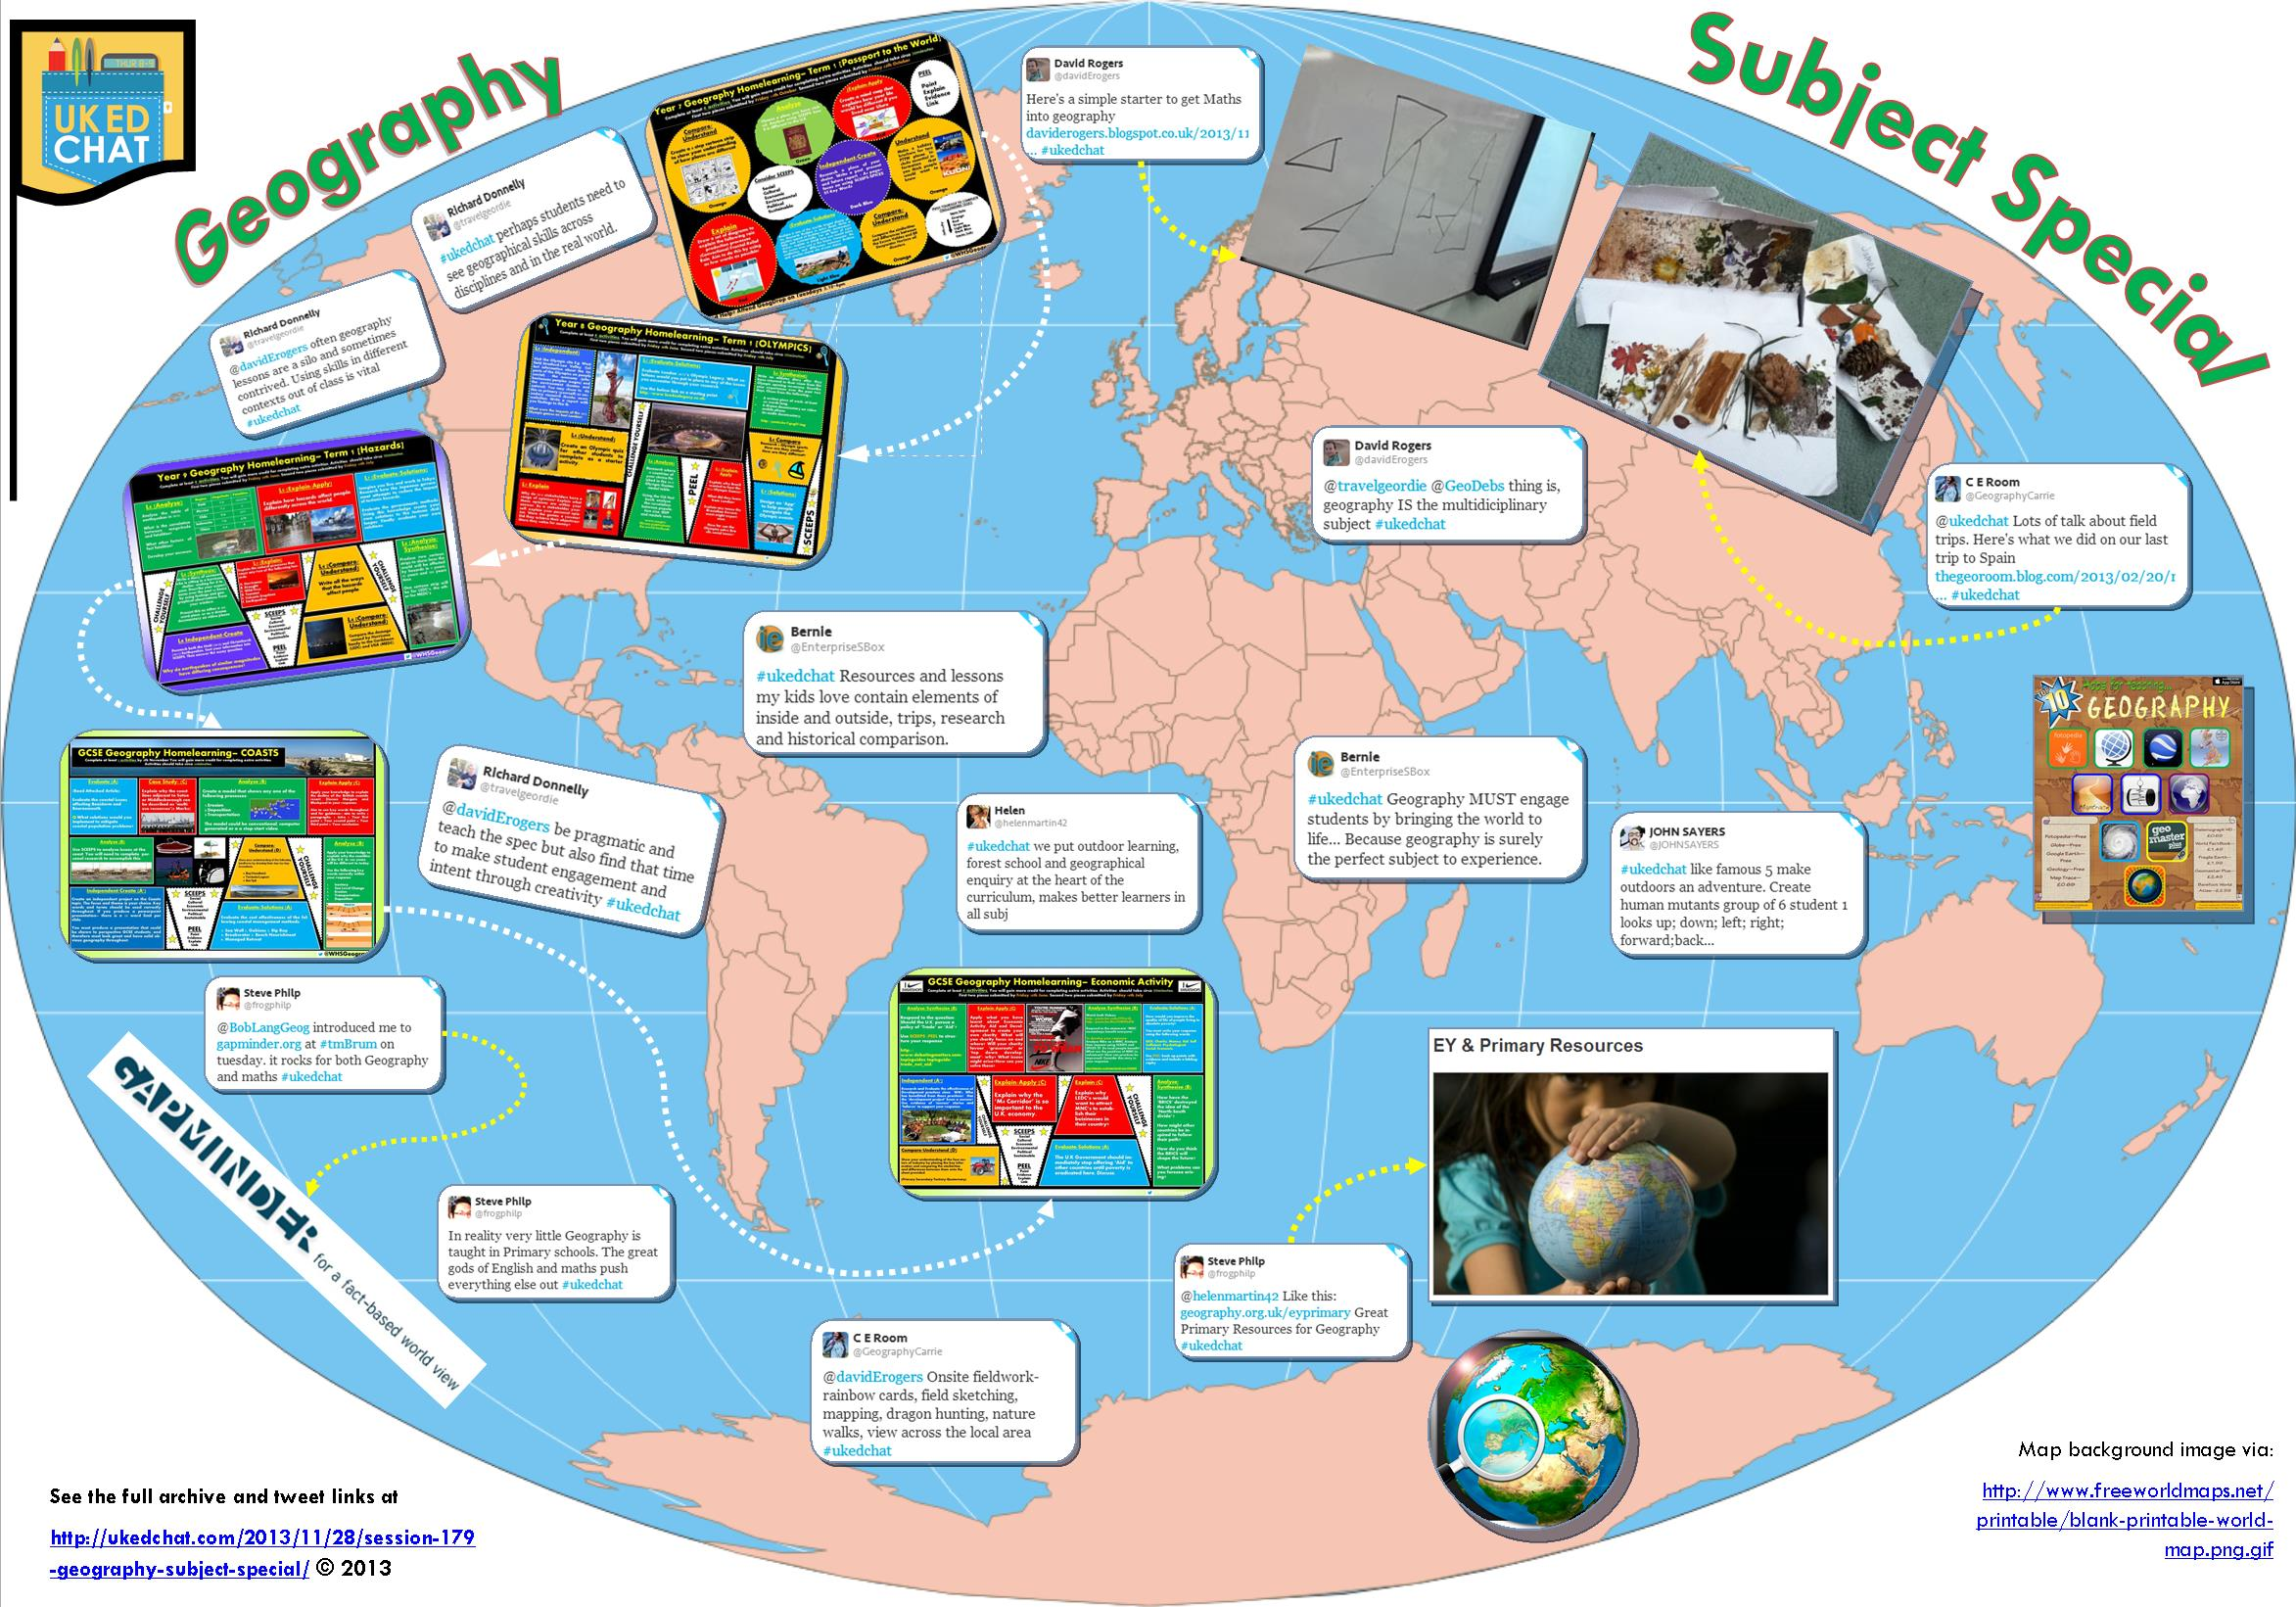 Geography accounts subject in 11th